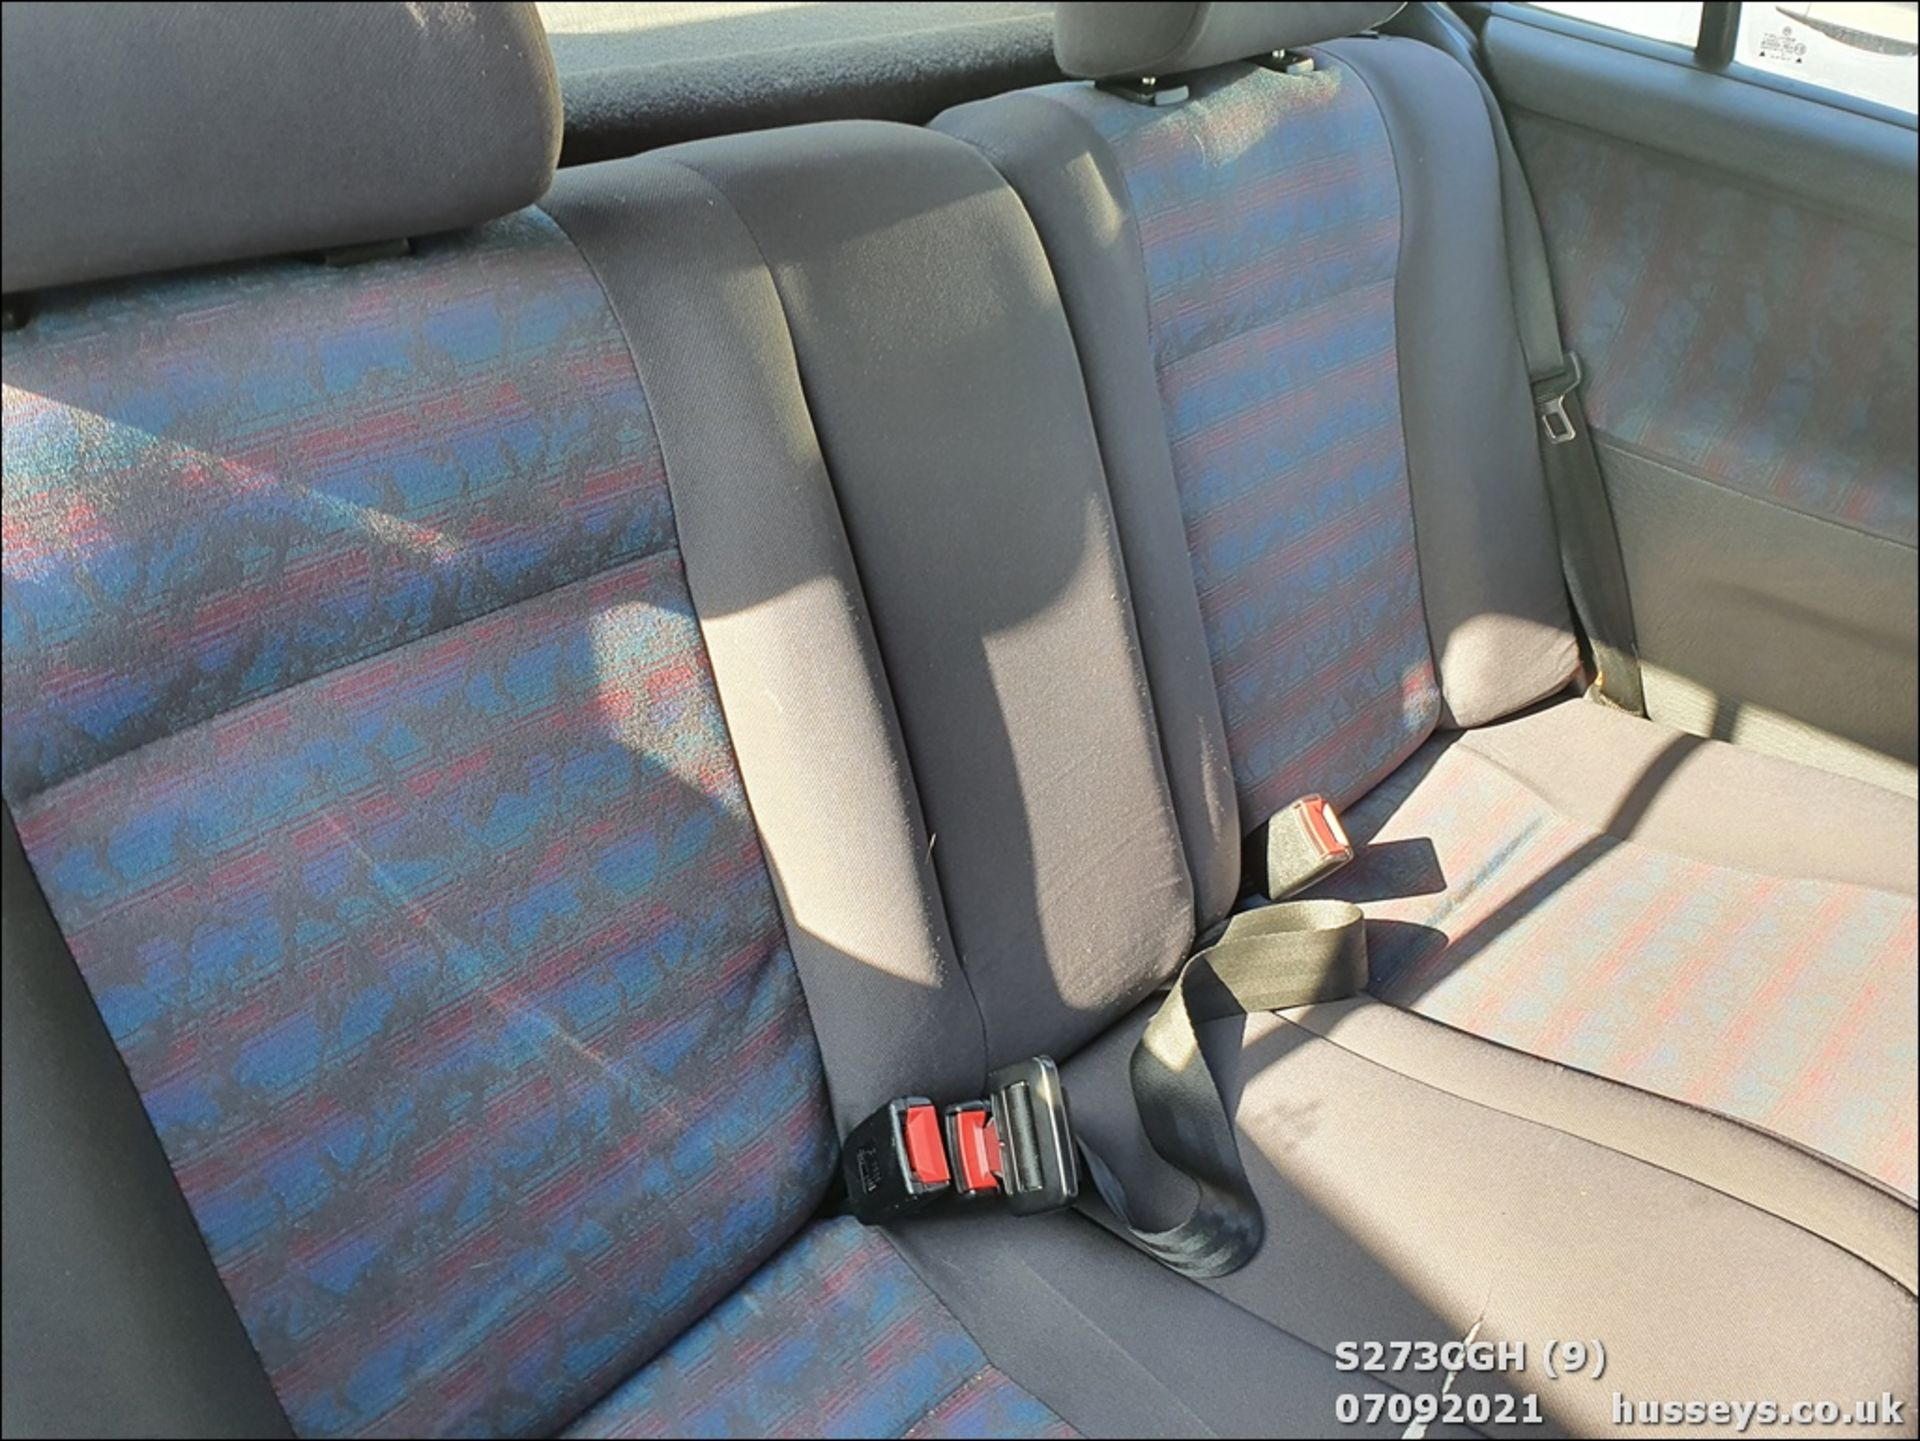 1998 VOLKSWAGEN POLO 1.6 GL AUTO - 1598cc 5dr Hatchback (Silver, 113k) - Image 9 of 13